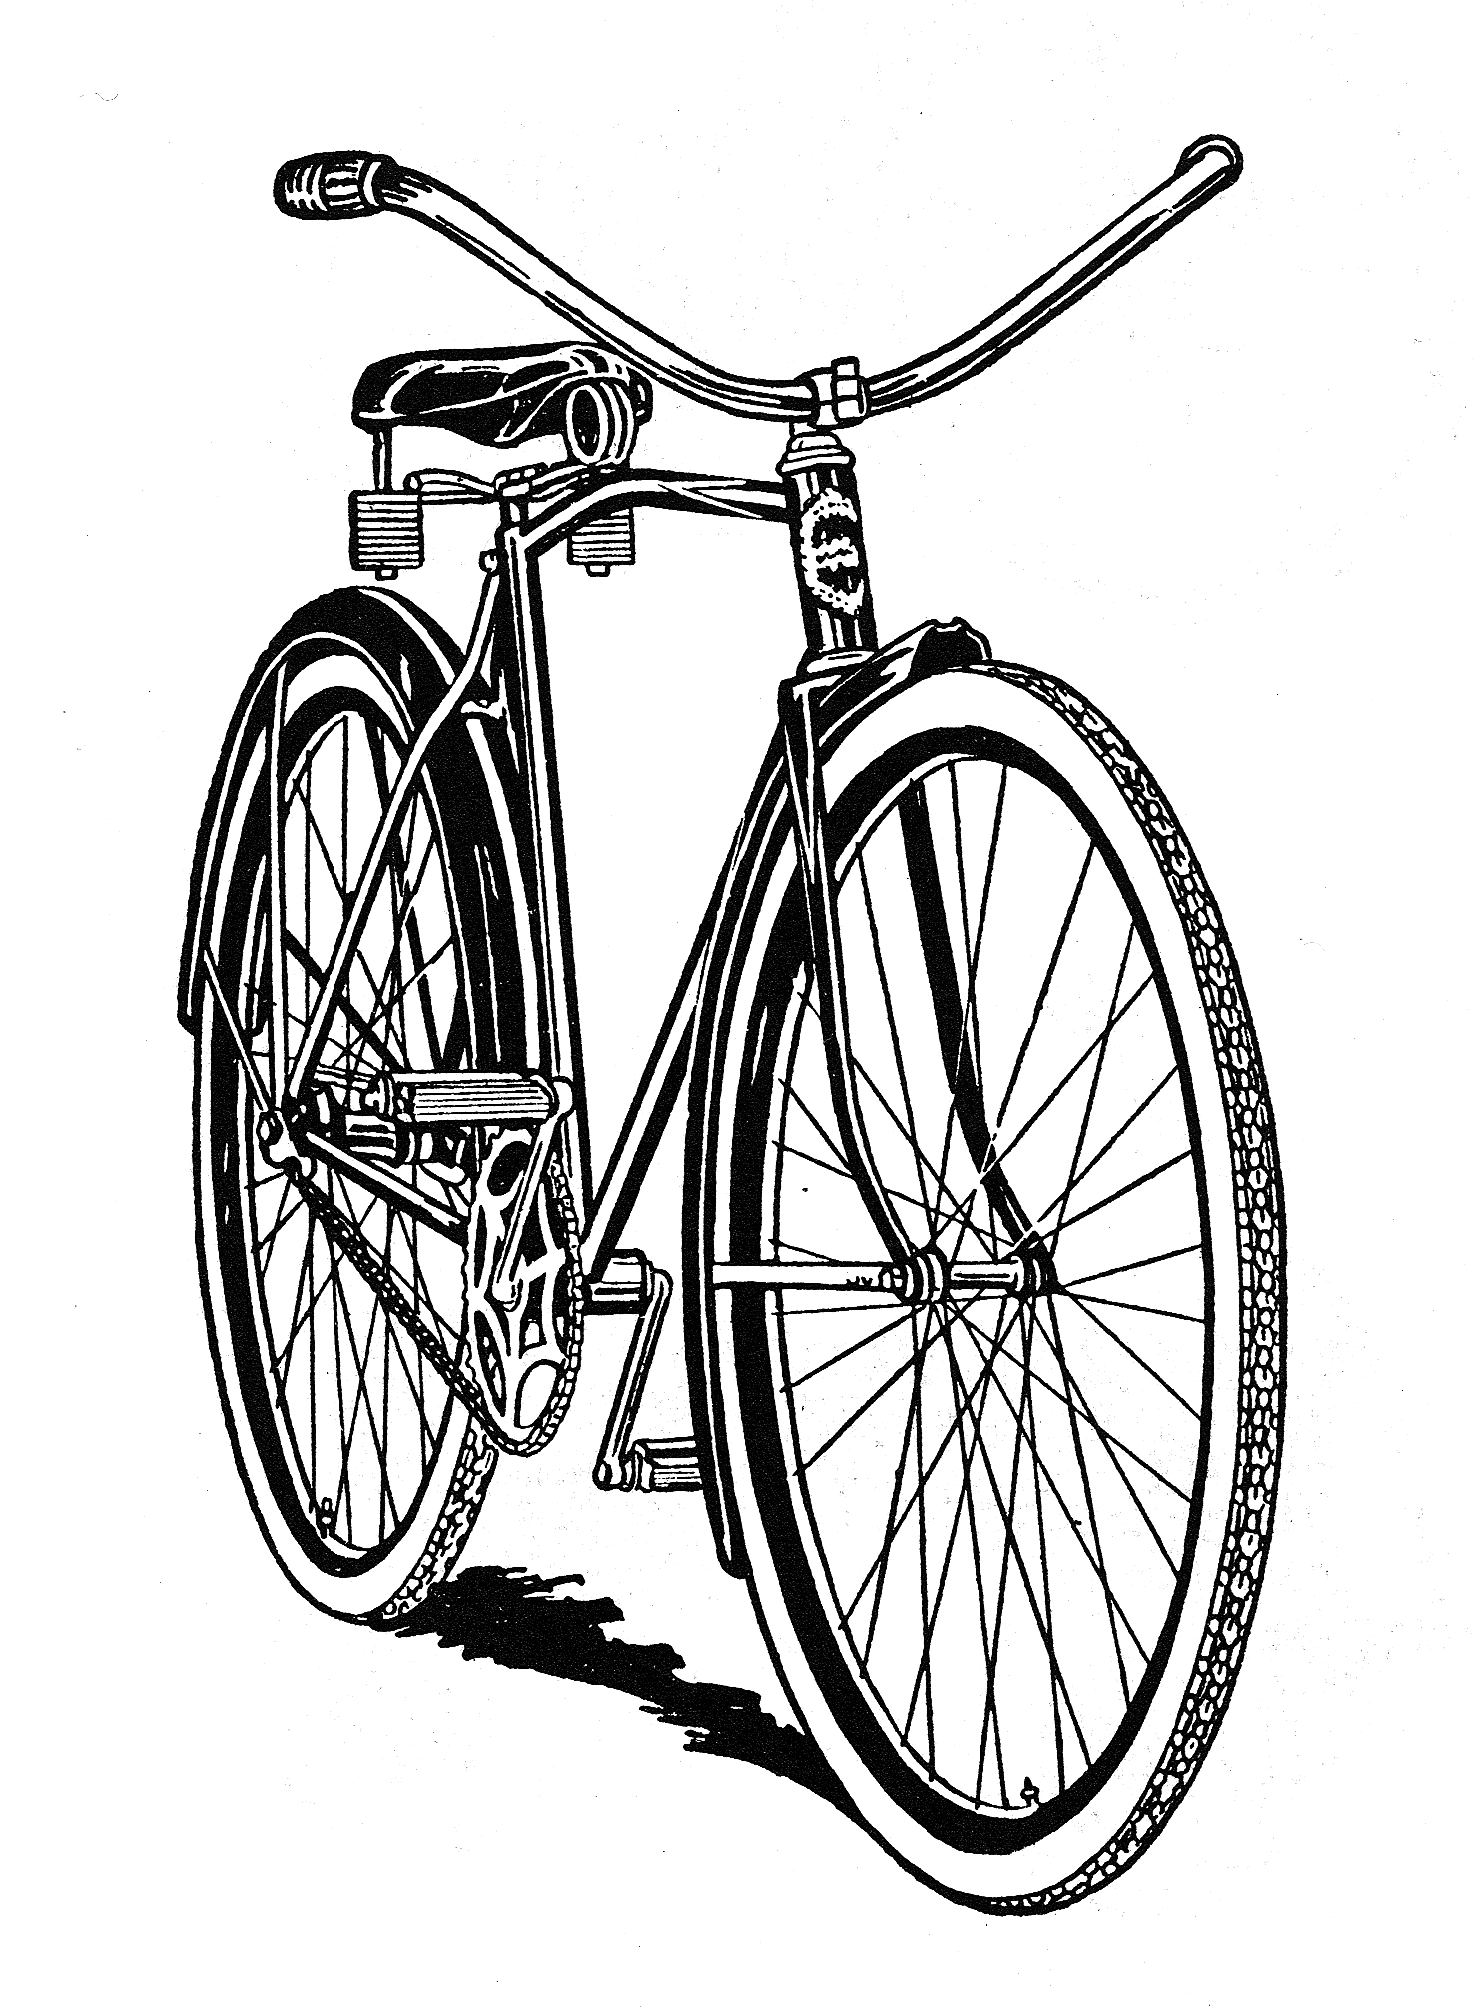 Cycle clipart old bicycle. Public domain bike sweet png library download